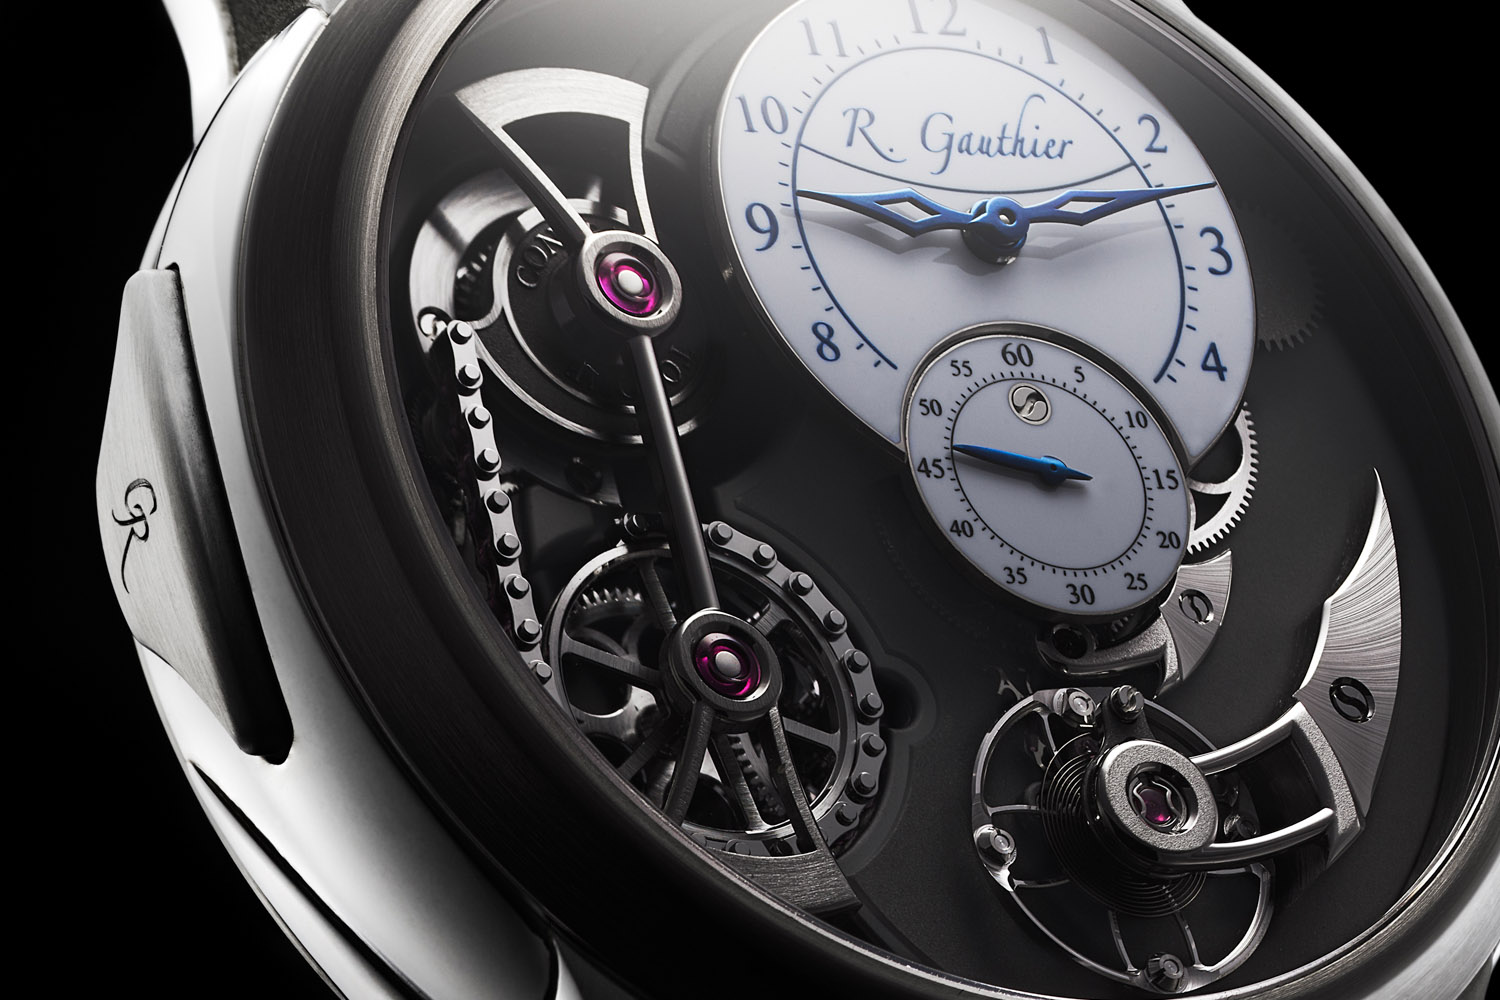 Romain-Gauthier-Logical-One-Natural-Titanium-6